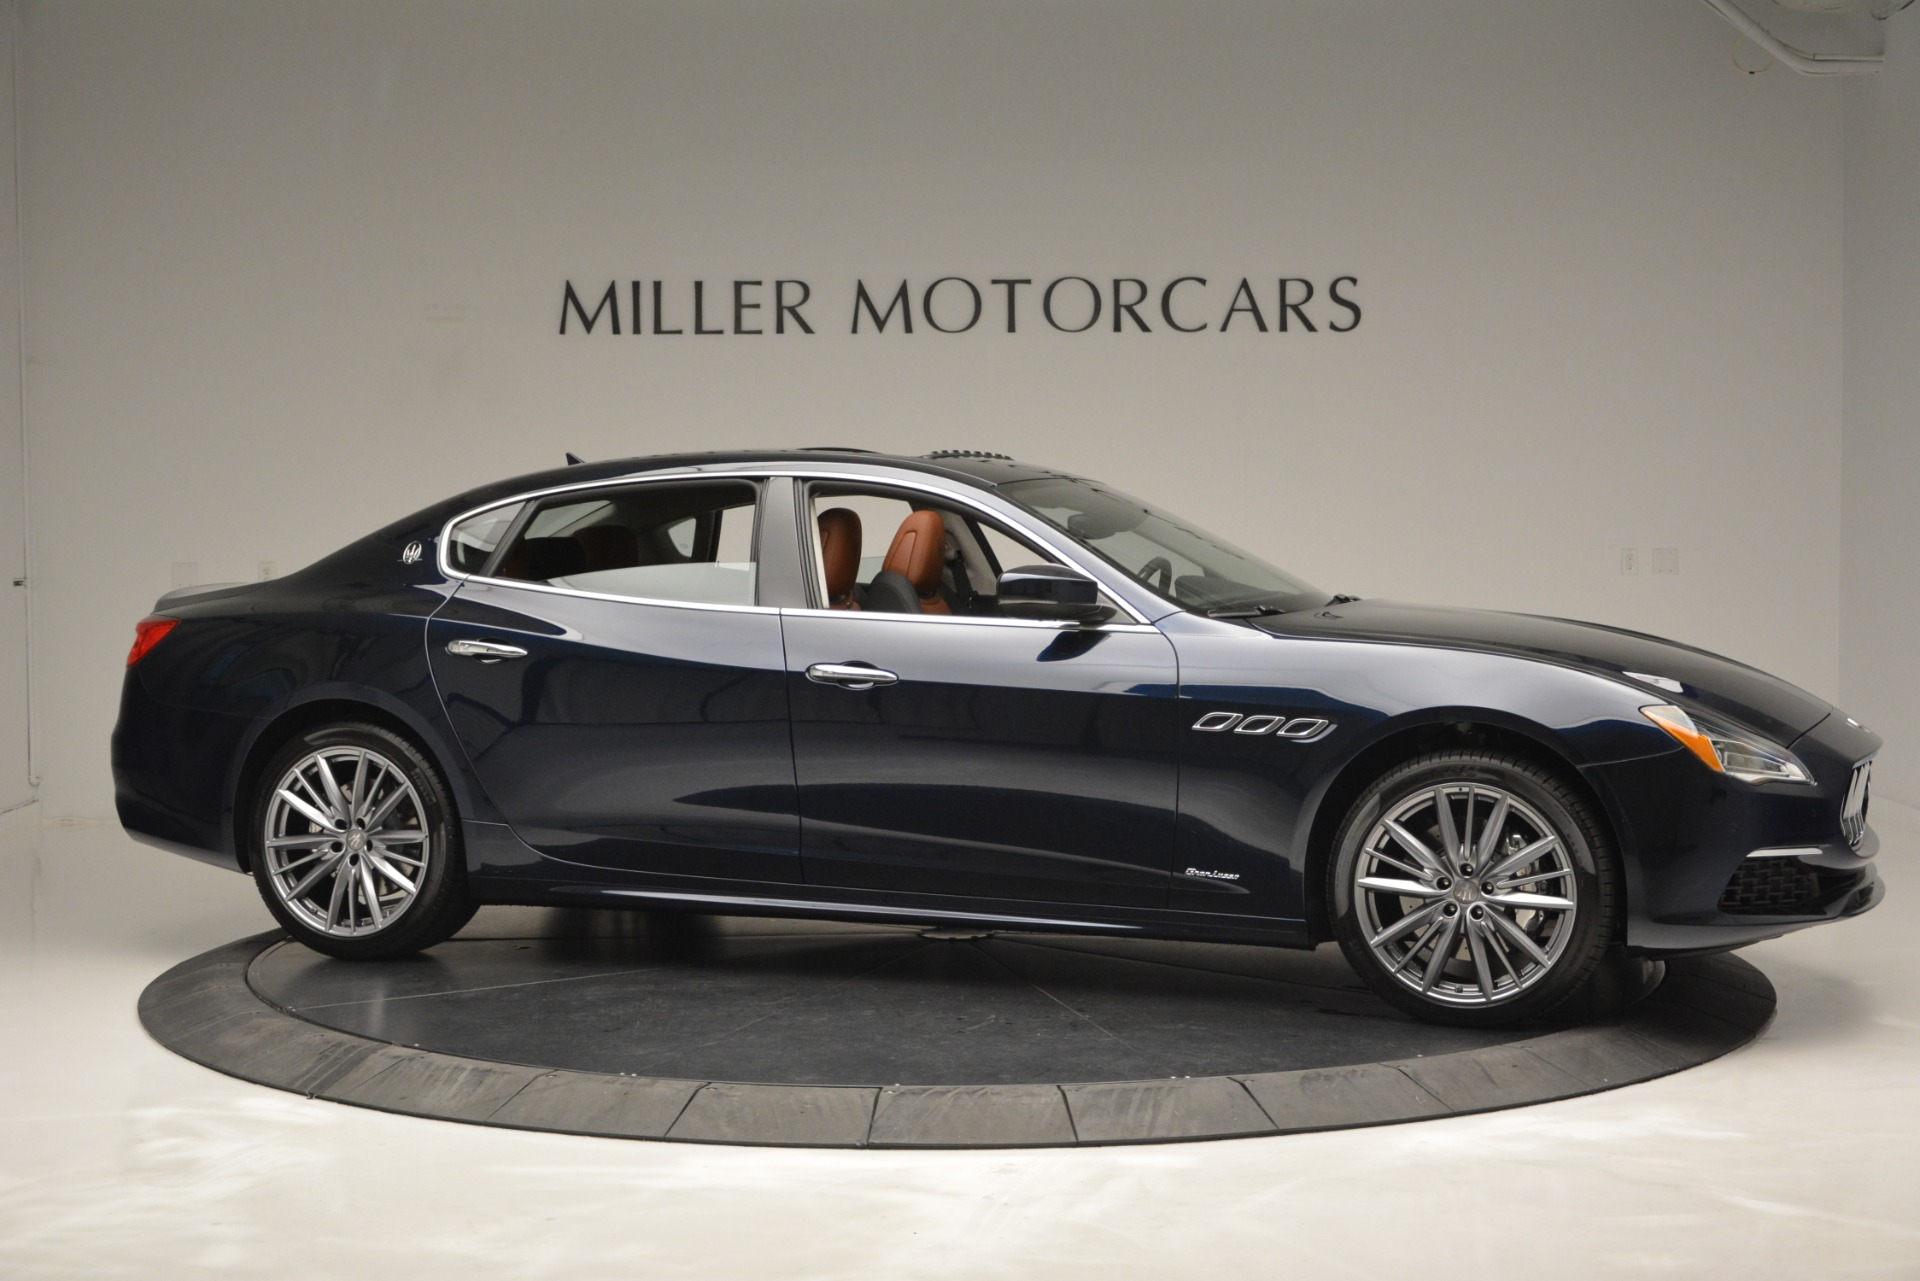 New 2019 Maserati Quattroporte S Q4 GranLusso Edizione Nobile For Sale 0 In Greenwich, CT